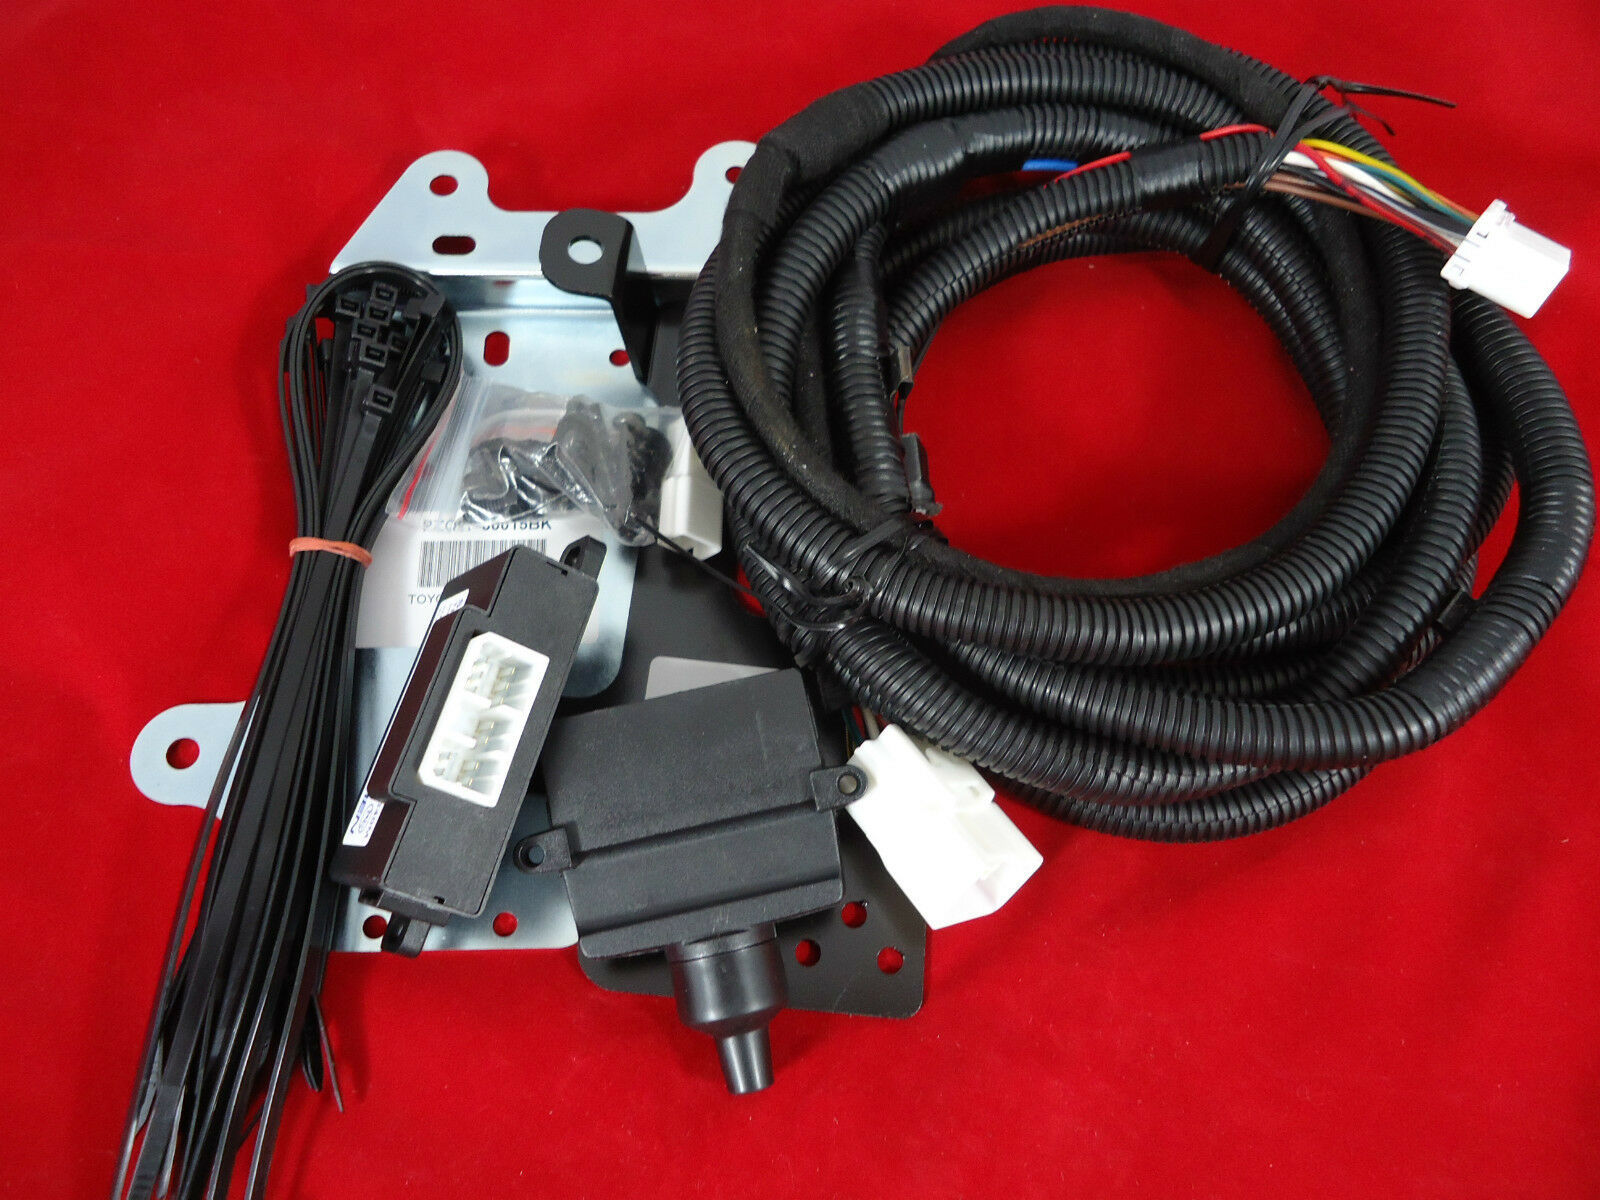 Details about TOYOTA LANDCRUISER 200 SERIES TOWBAR WIRING HARNESS 7 on sprinter wiring harness, mustang wiring harness, camaro wiring harness, wrangler wiring harness, nissan wiring harness, scout ii wiring harness, impala wiring harness, corvette wiring harness, land rover wiring harness,